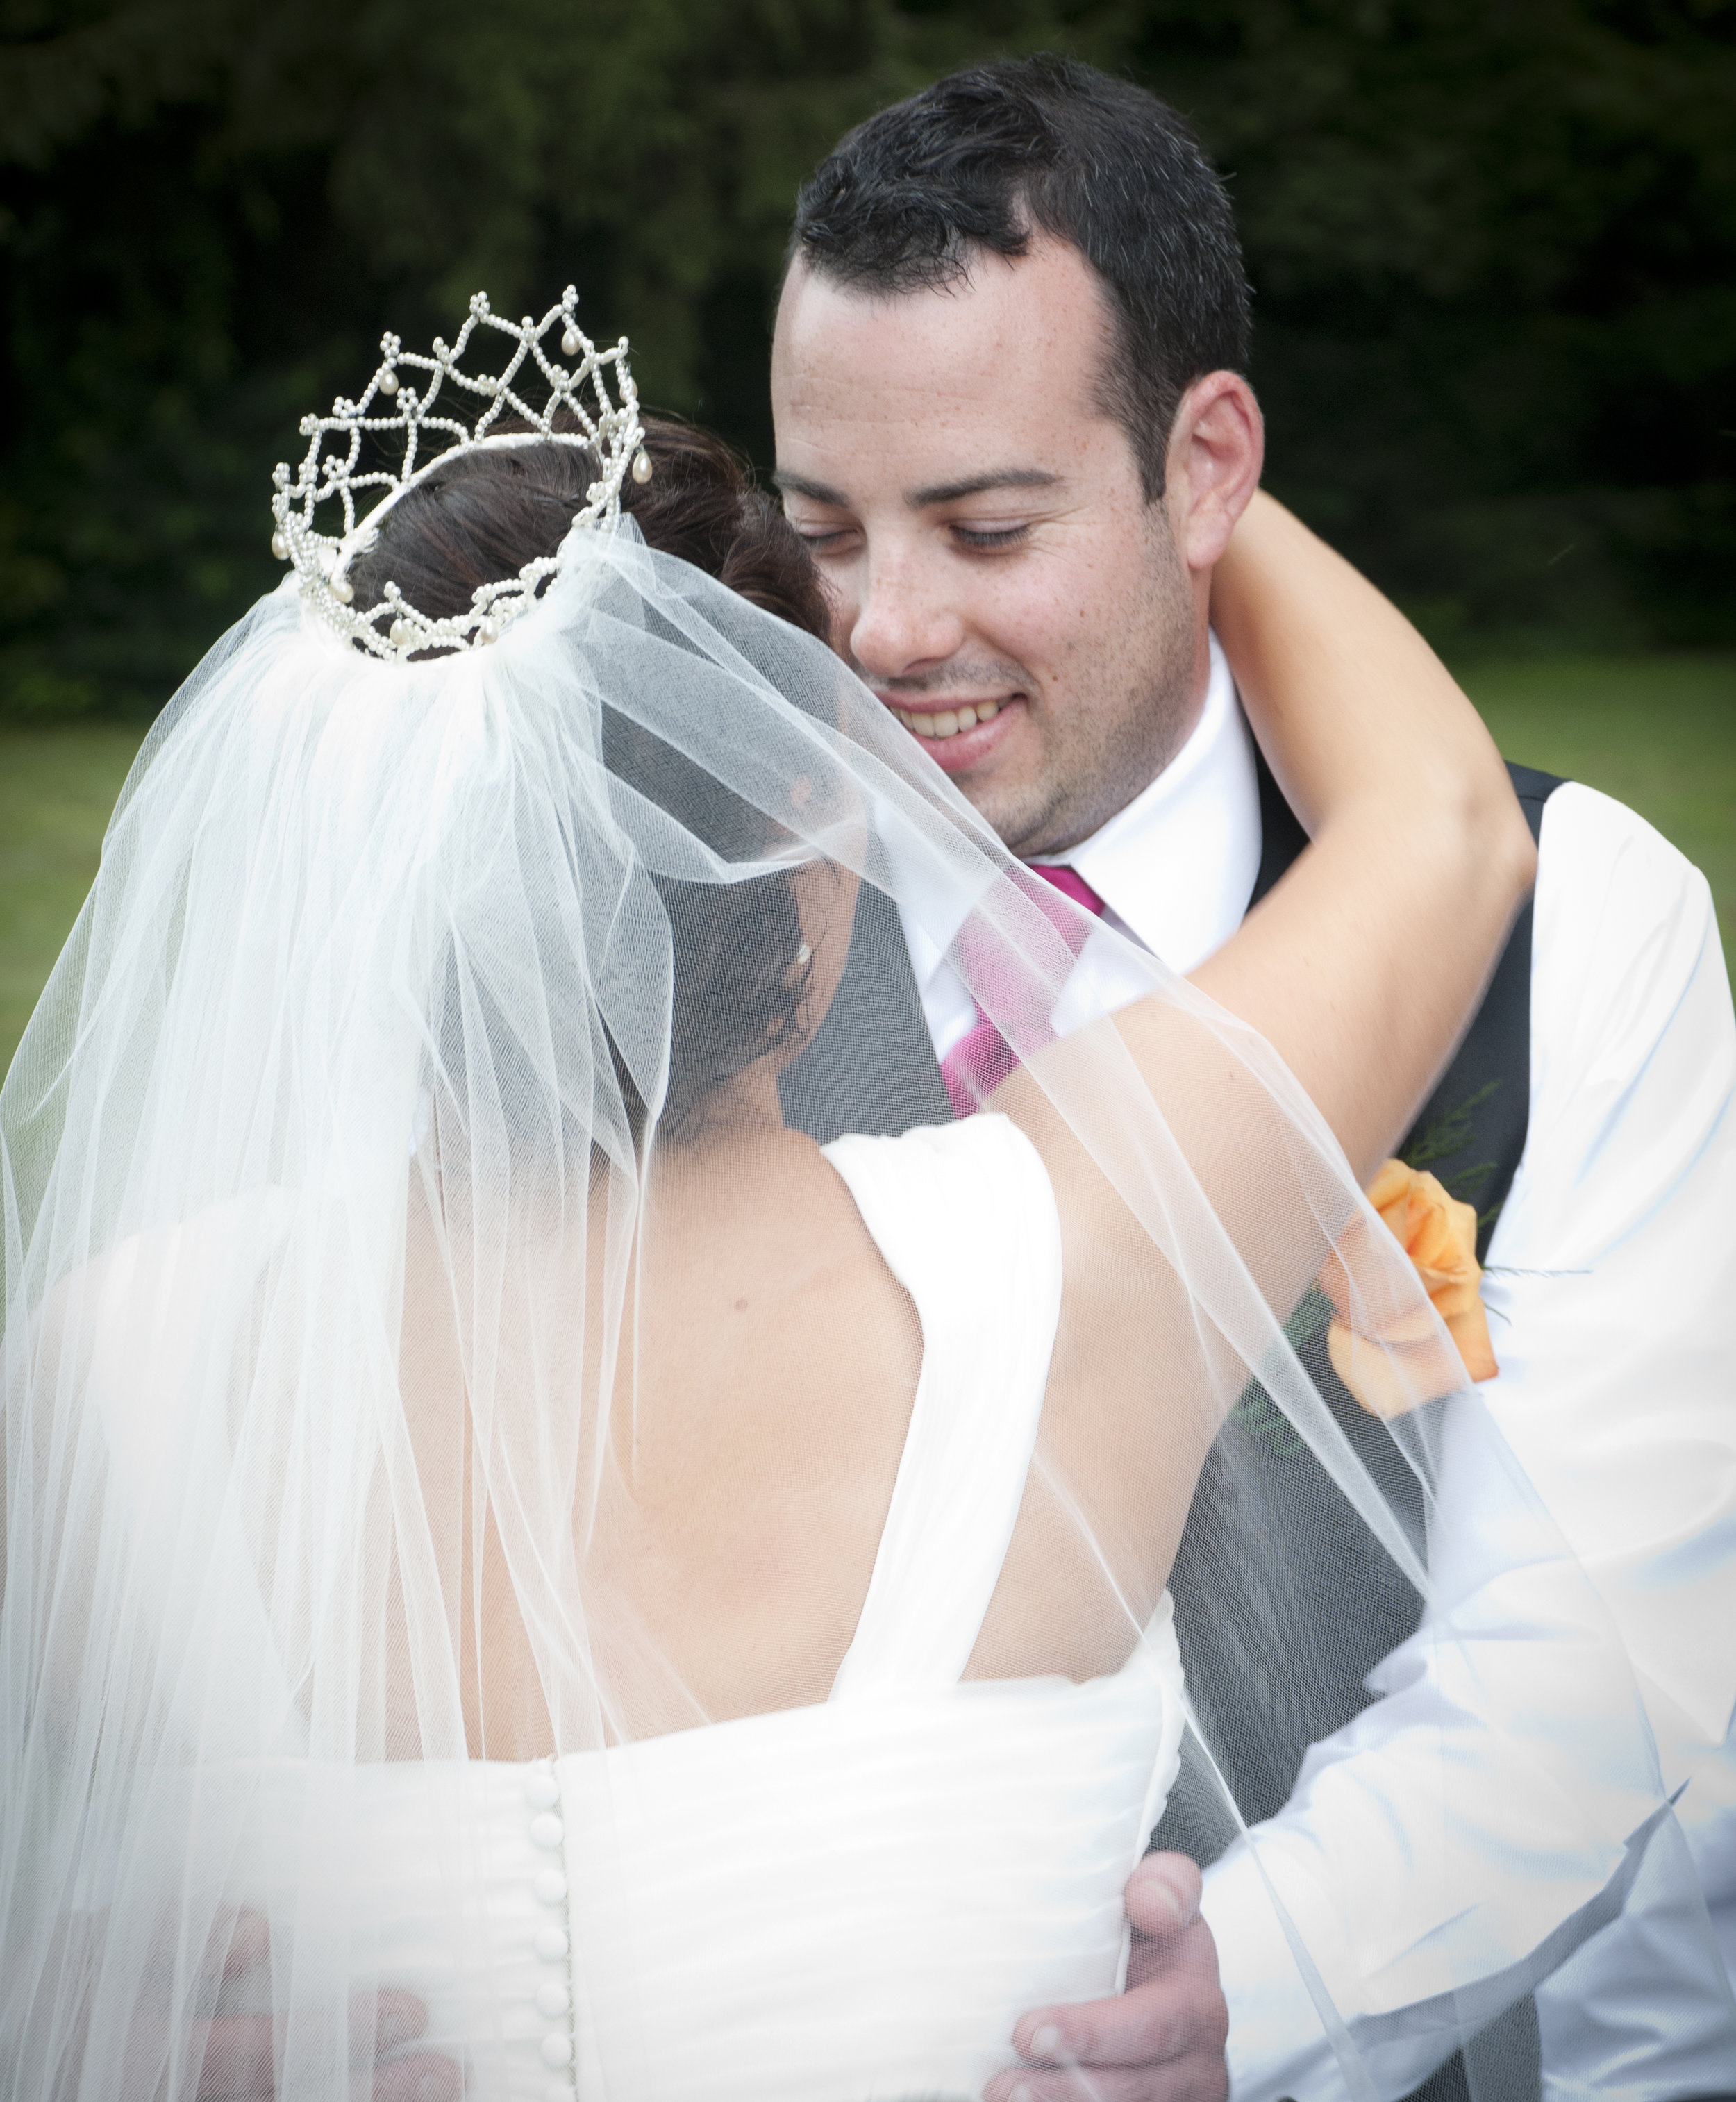 Christie & Ricky Kovacs on their wedding day at Miss Hall's School for Girls in Pittsfield, MA.